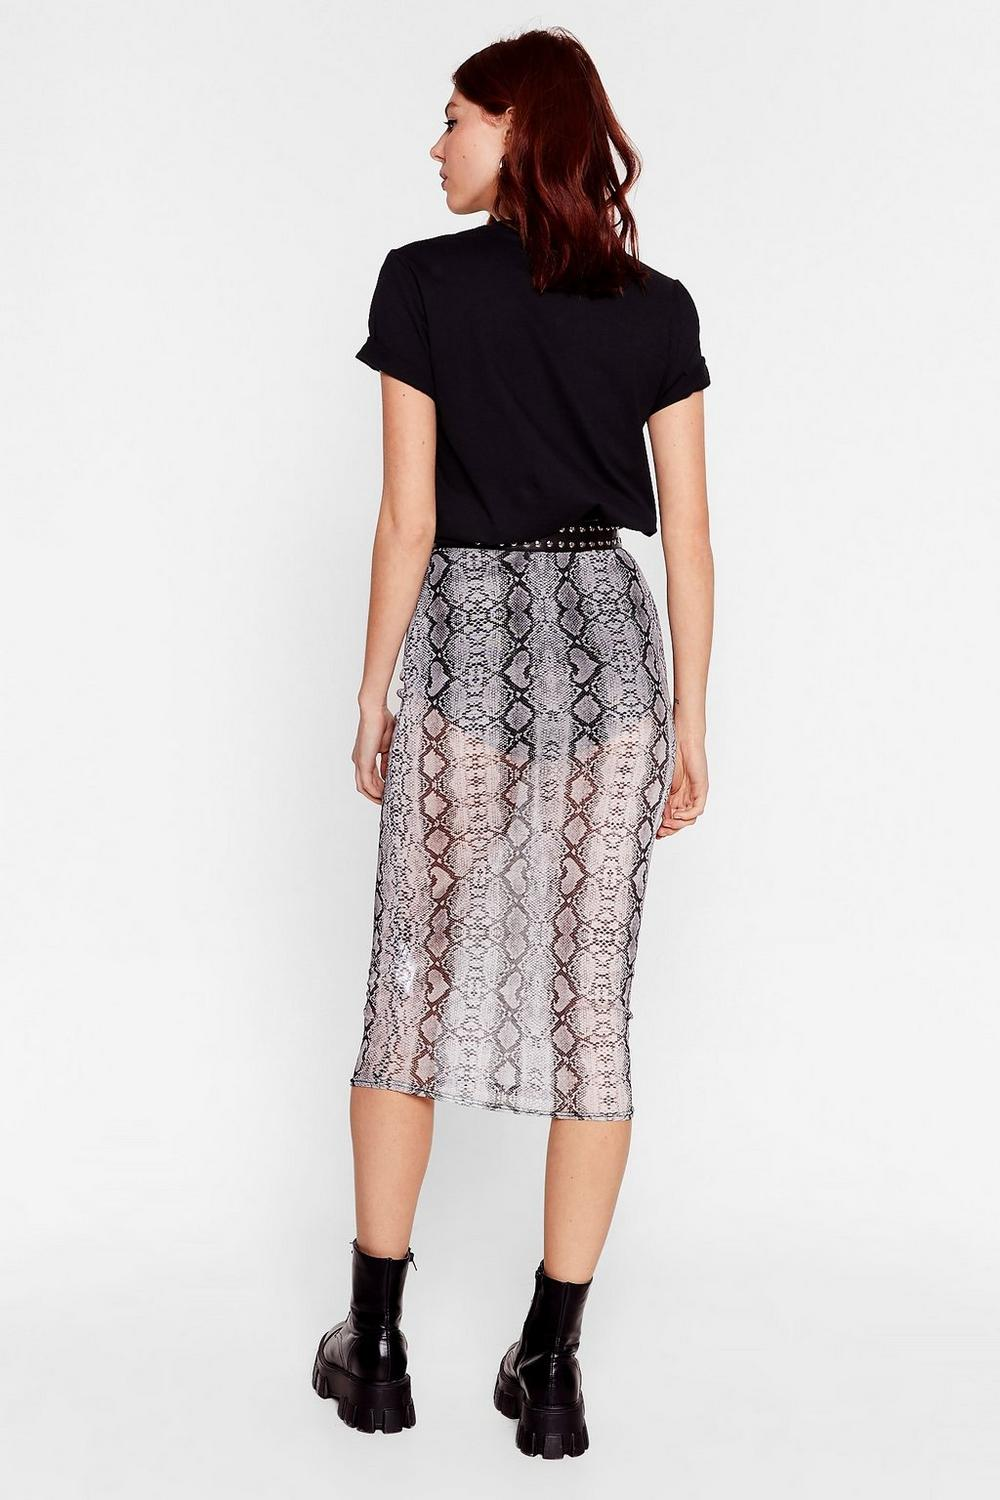 1a6670fb0 Call It a Snake Through Mesh Midi Skirt | Shop Clothes at Nasty Gal!